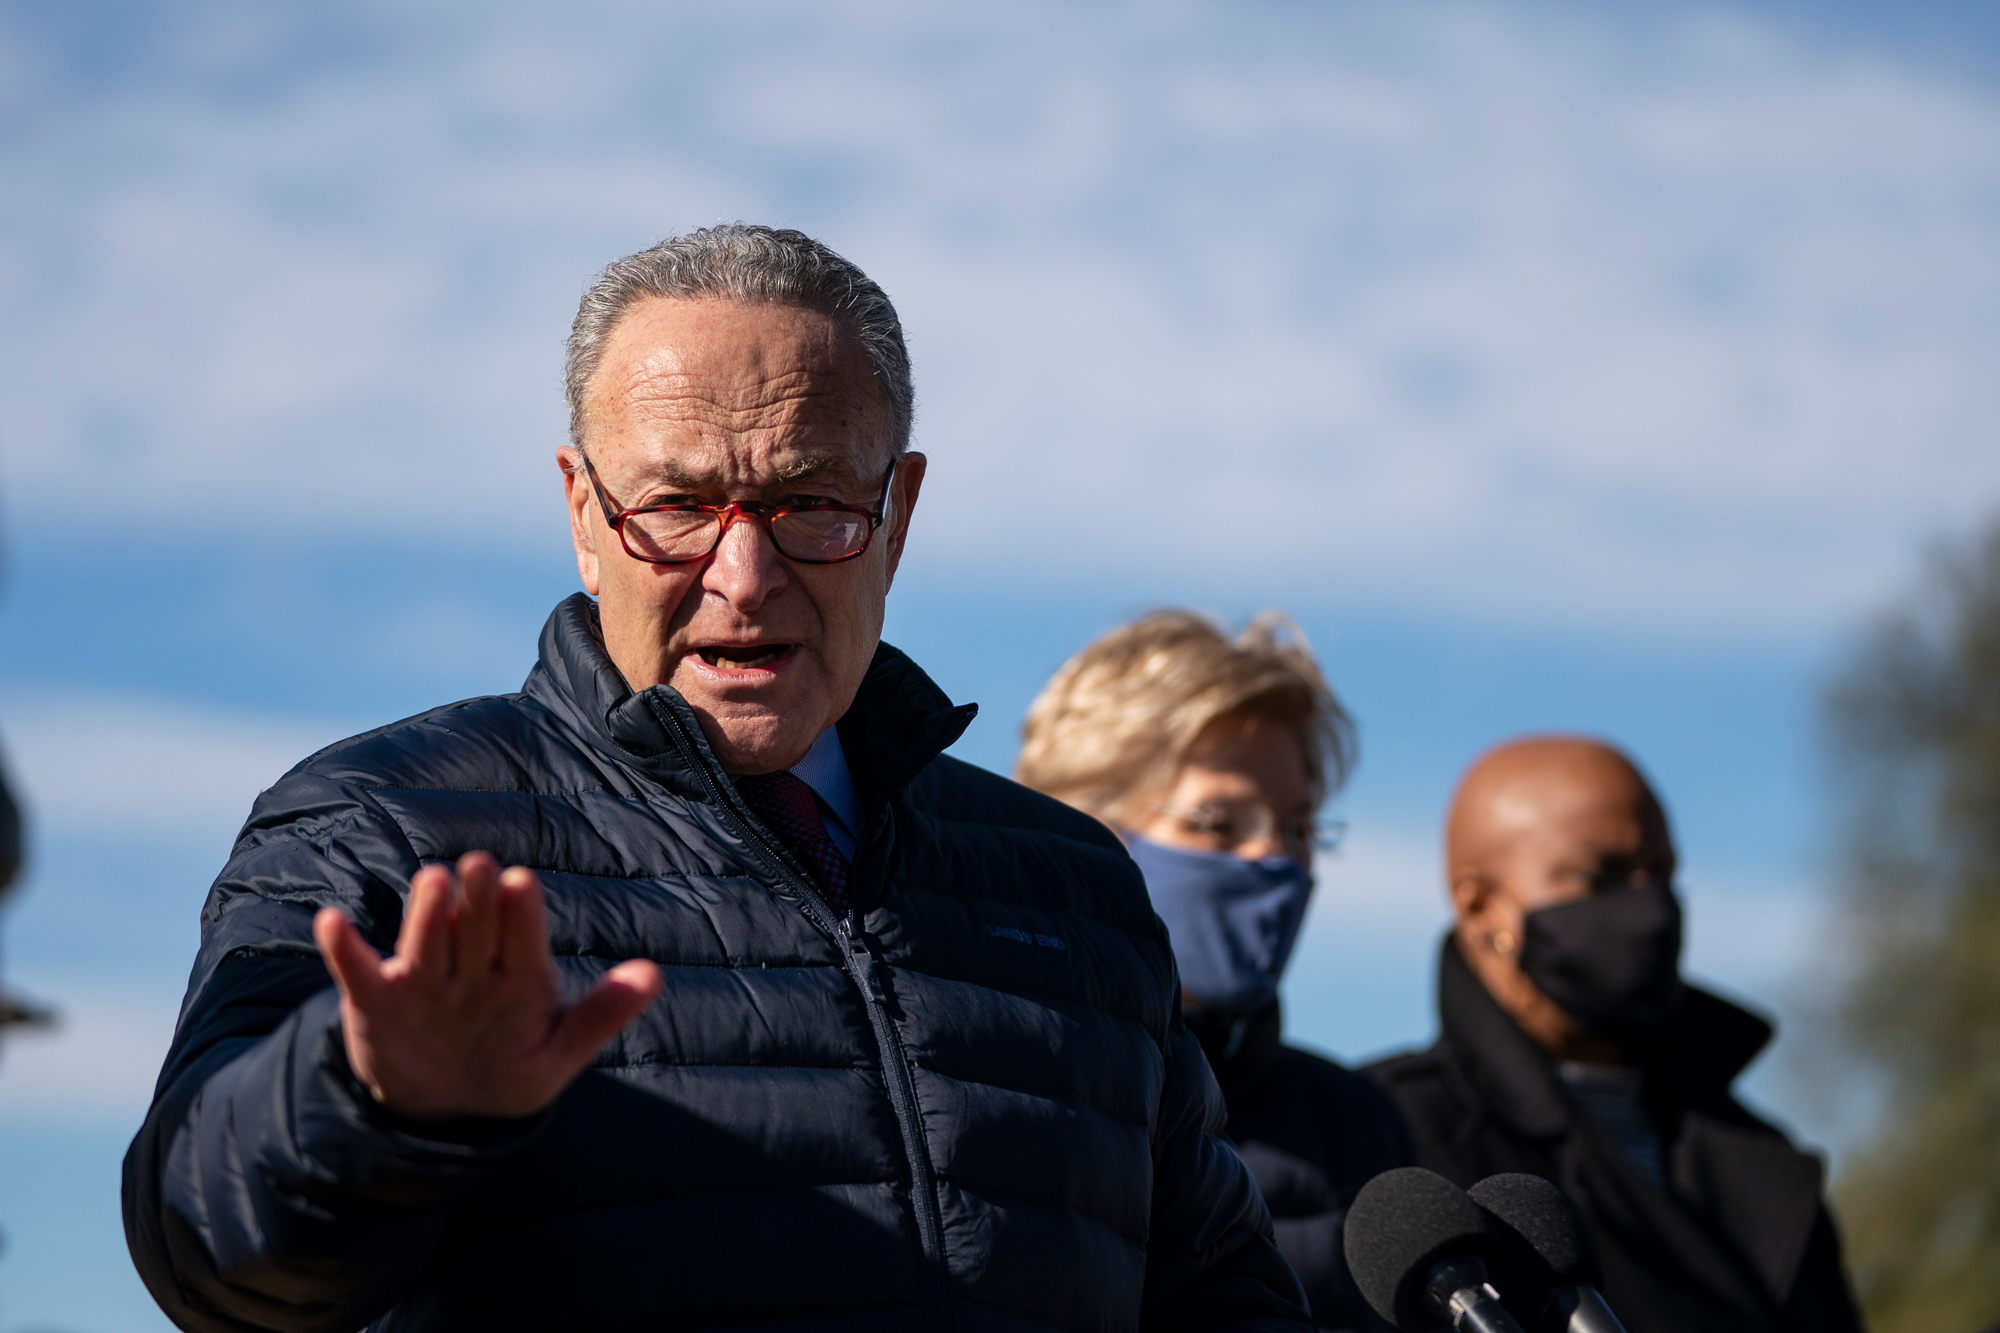 Senate Majority Leader Chuck Schumer speaks during a press conference outside the U.S. Capitol on February 4 in Washington, DC.